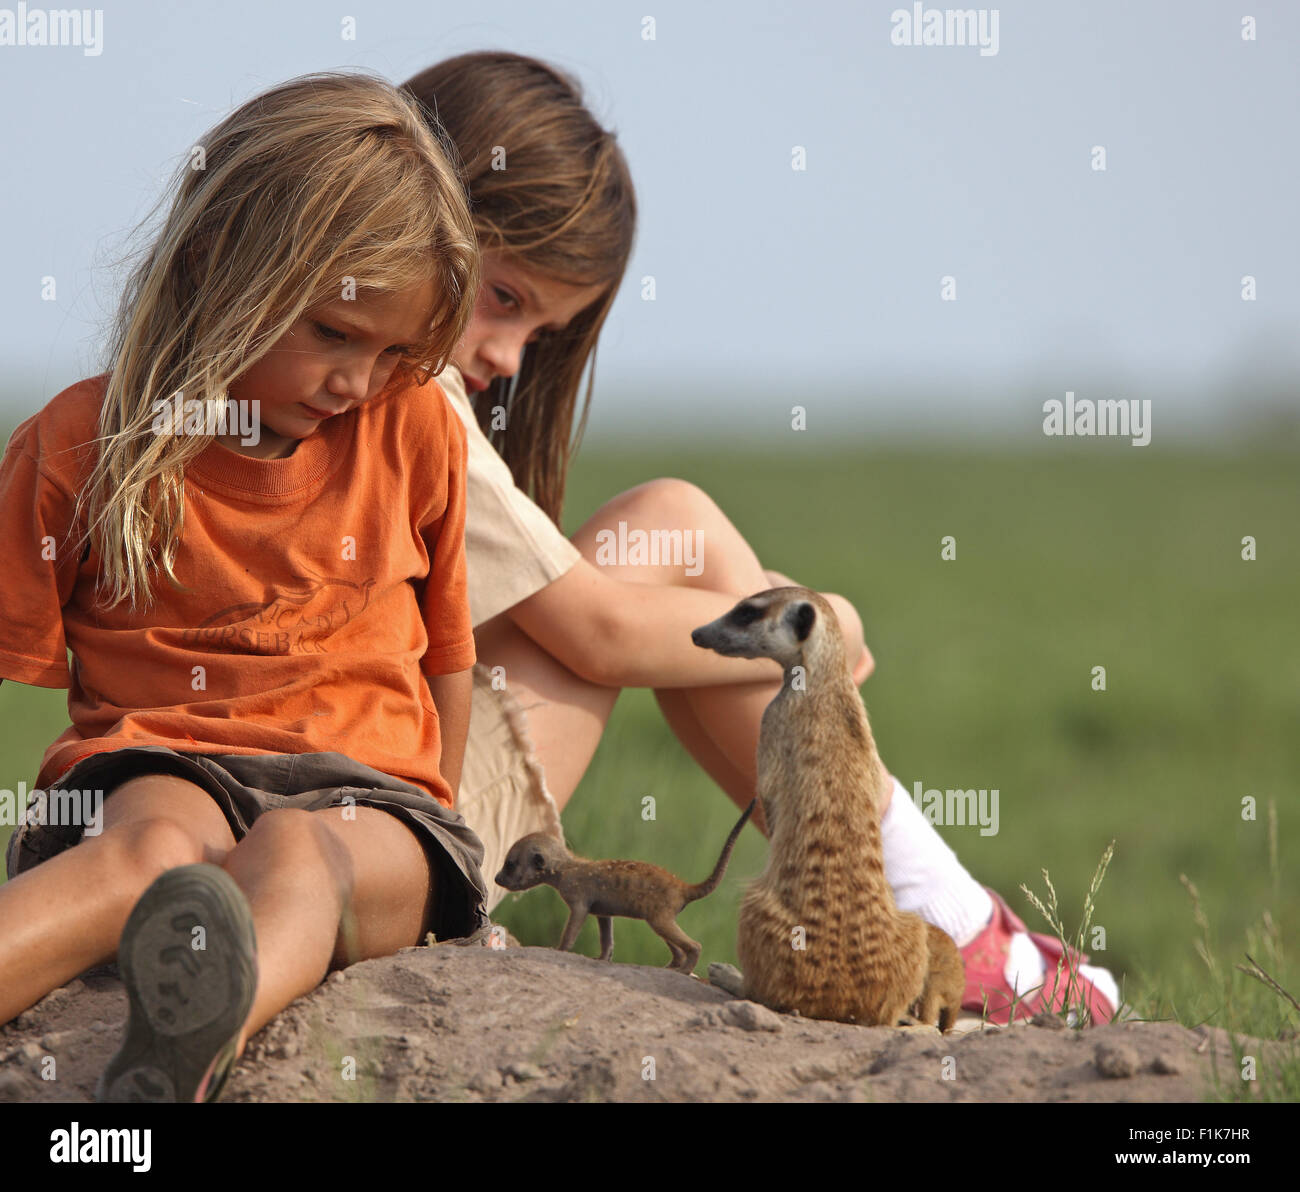 Girls playing with tame meerkat family in the wild - Stock Image